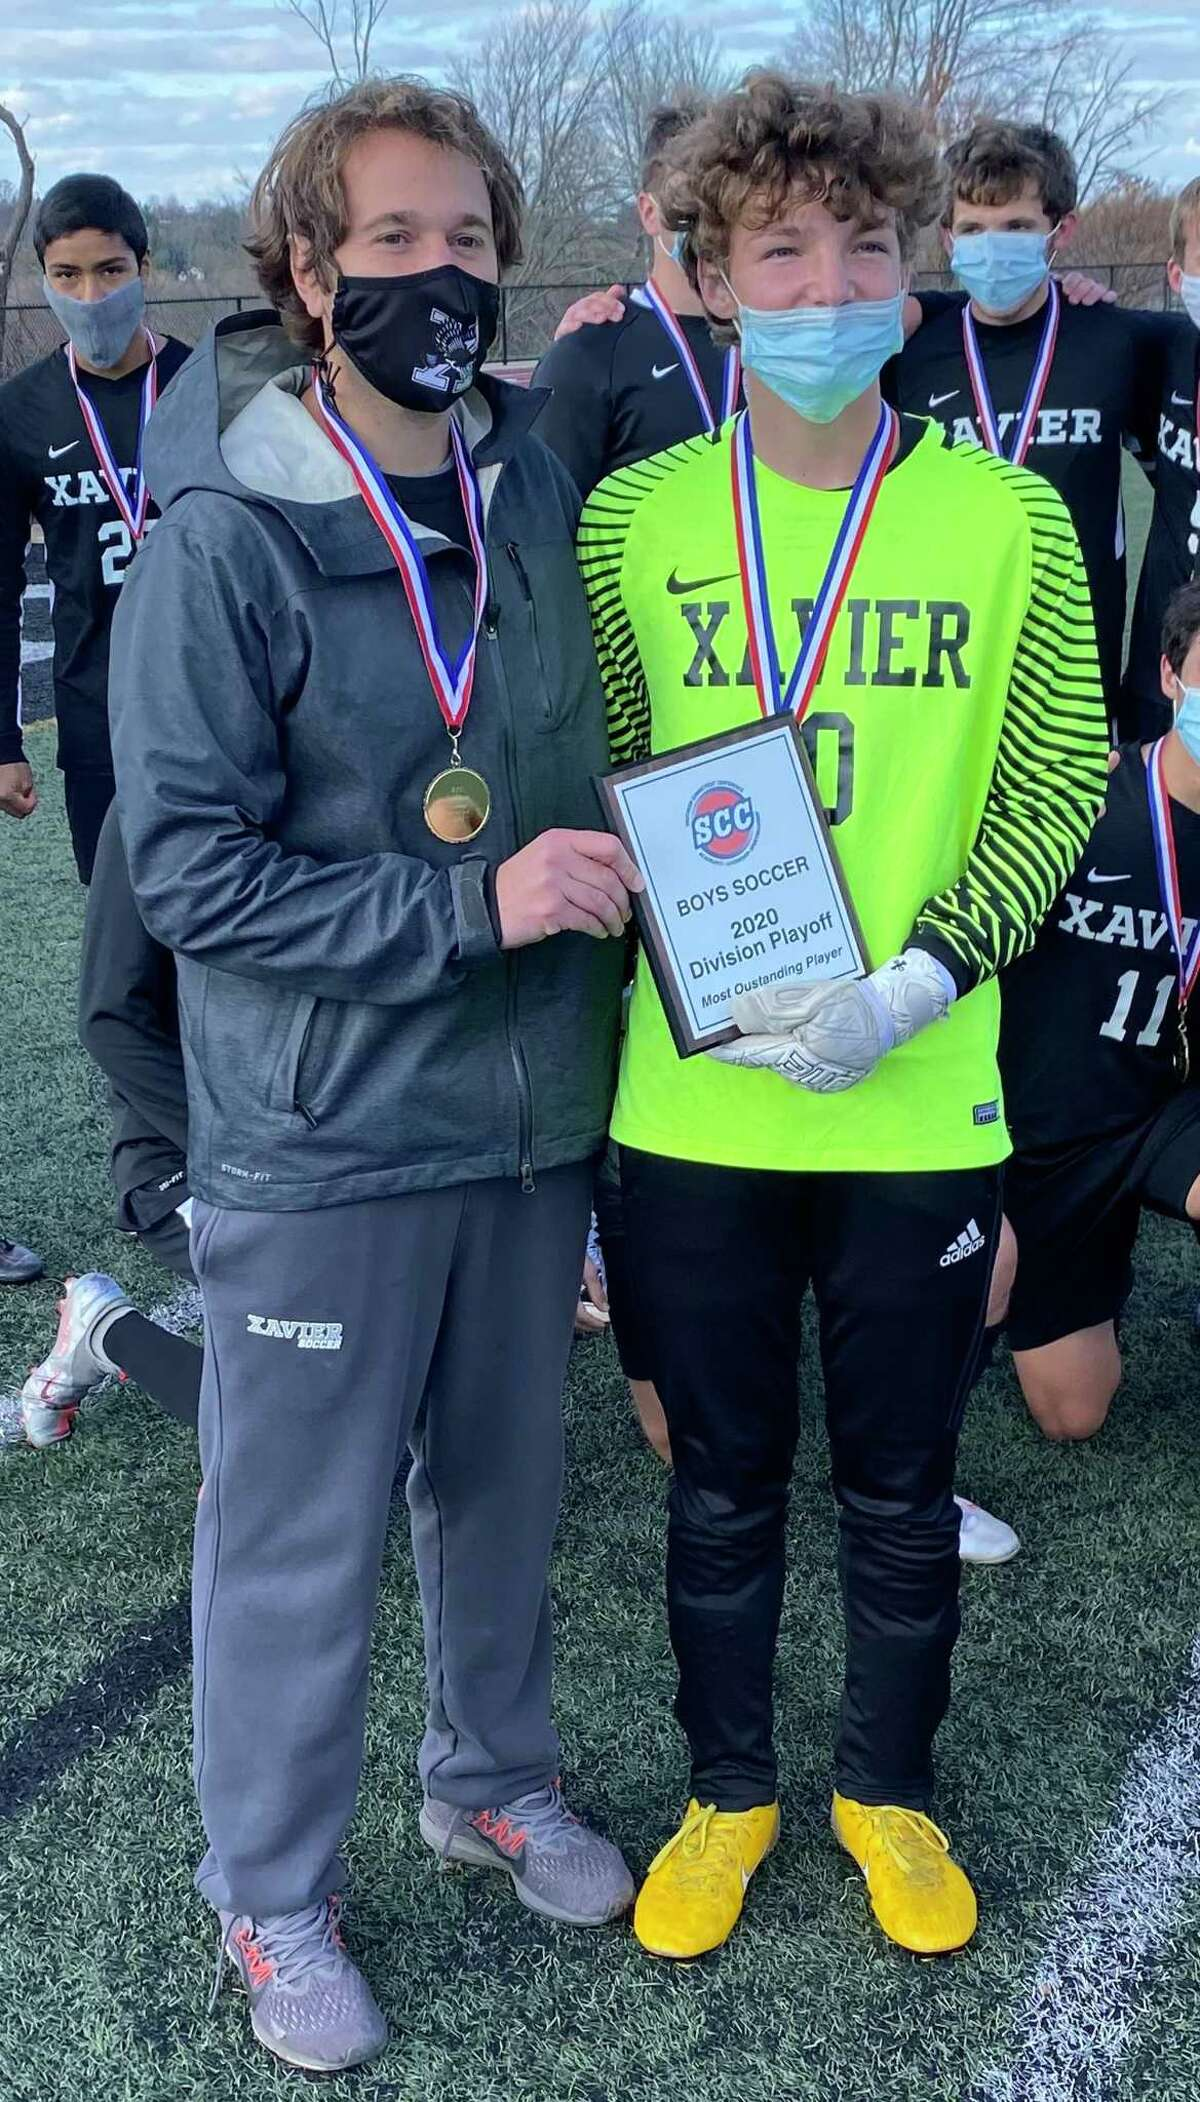 Xavier coach Brian Fitzgerald and Outstanding Player goalkeeper Spencer Misenti. The goalkeeper was named the SCC-A tournament's Most Outstanding Player, recording four saves in a 2-1 win over Cheshire in the championship game this week.